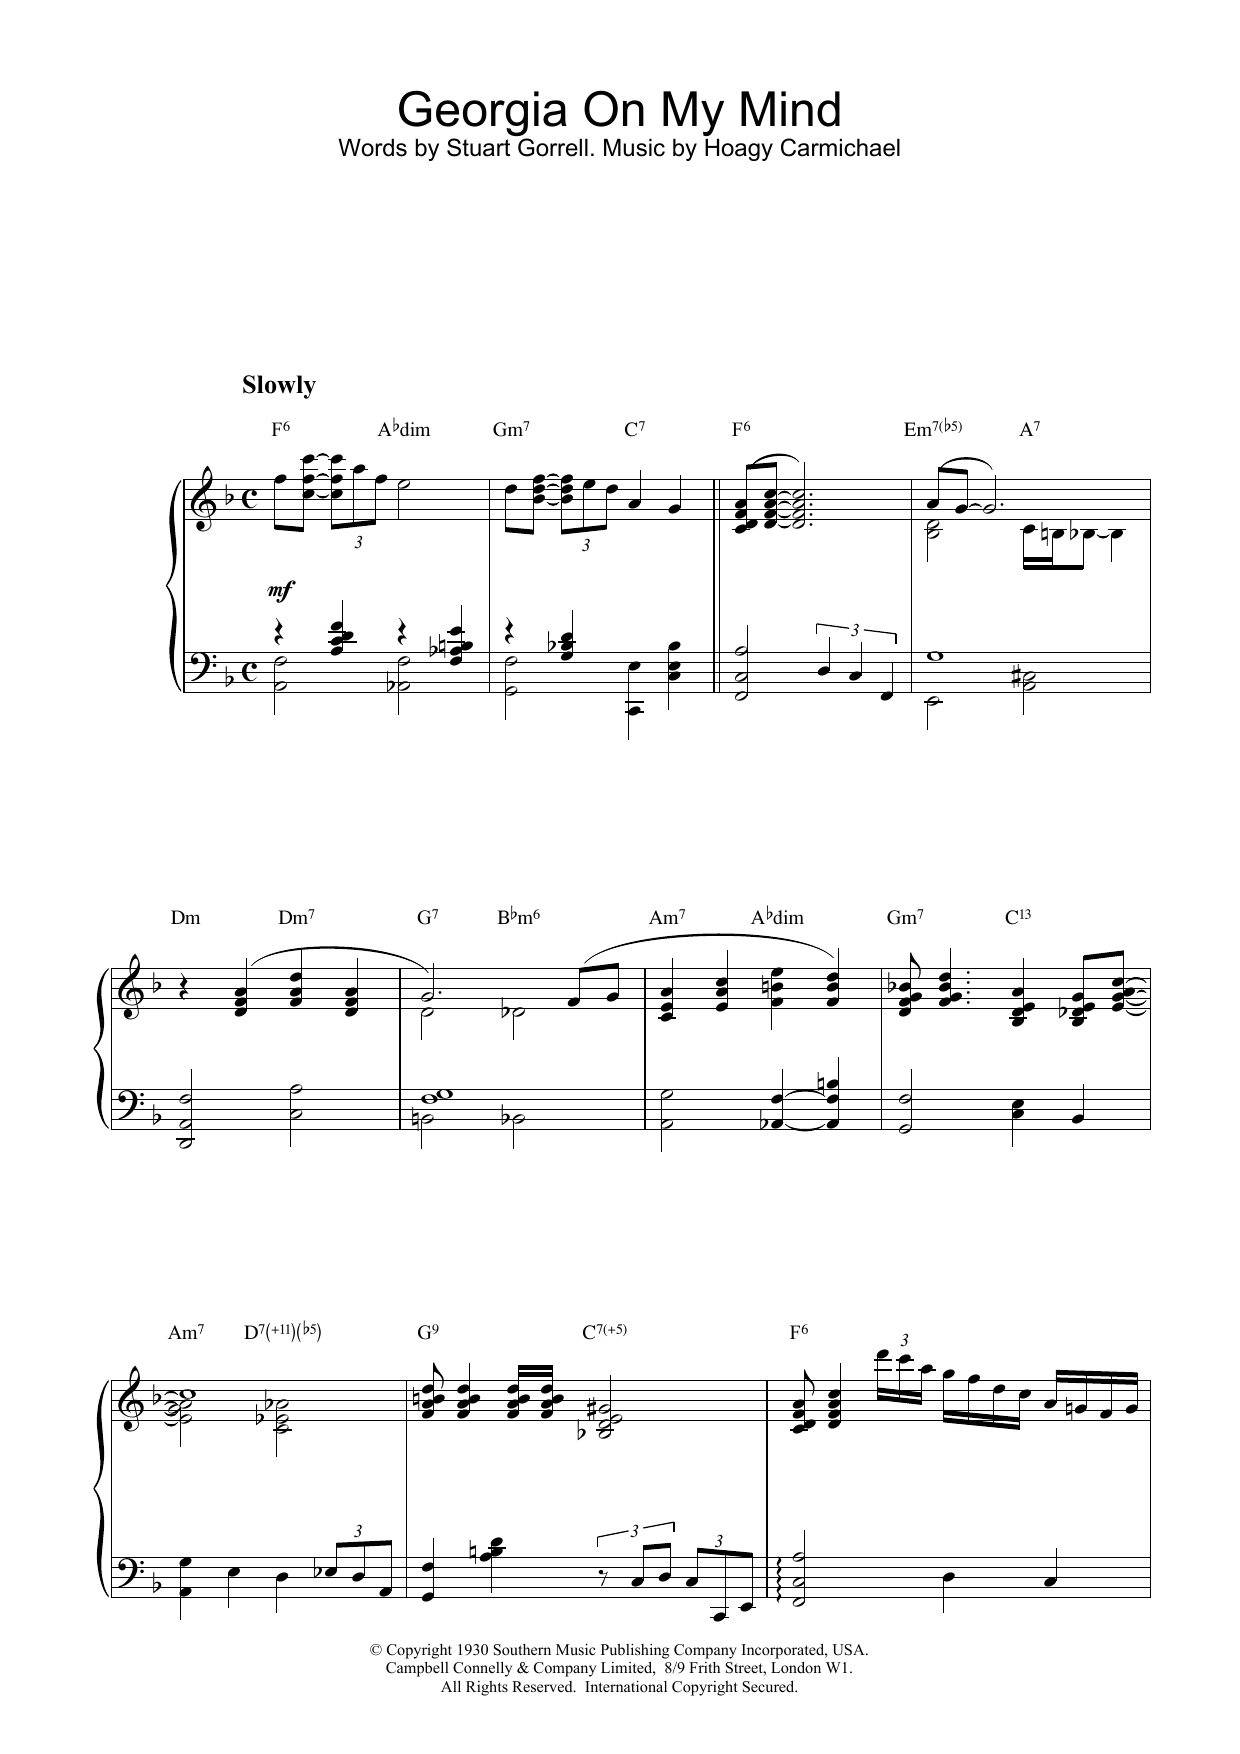 Georgia On My Mind sheet music for piano solo by Stuart Gorrell